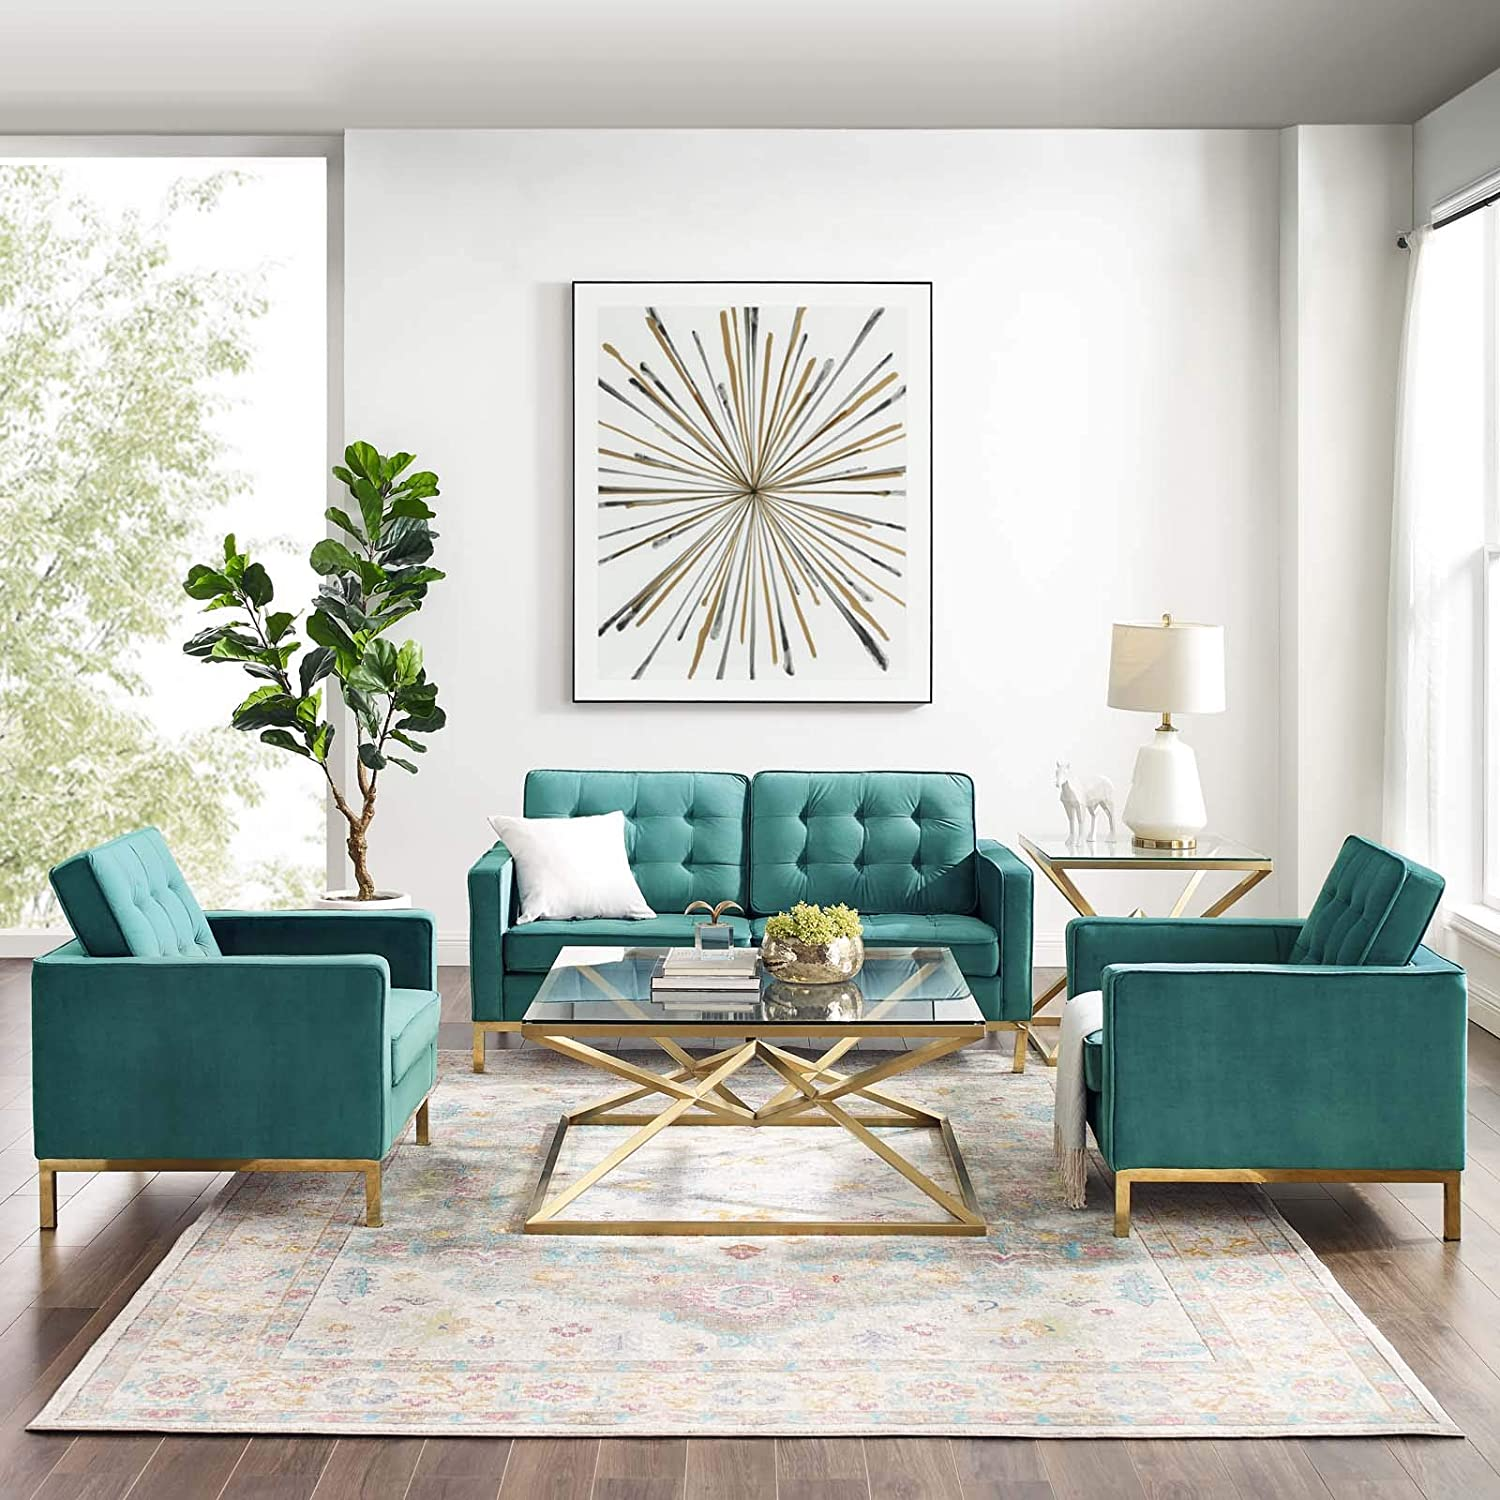 Amazon Com Modway Loft Living Room Furniture Sets Gold Teal Furniture Decor